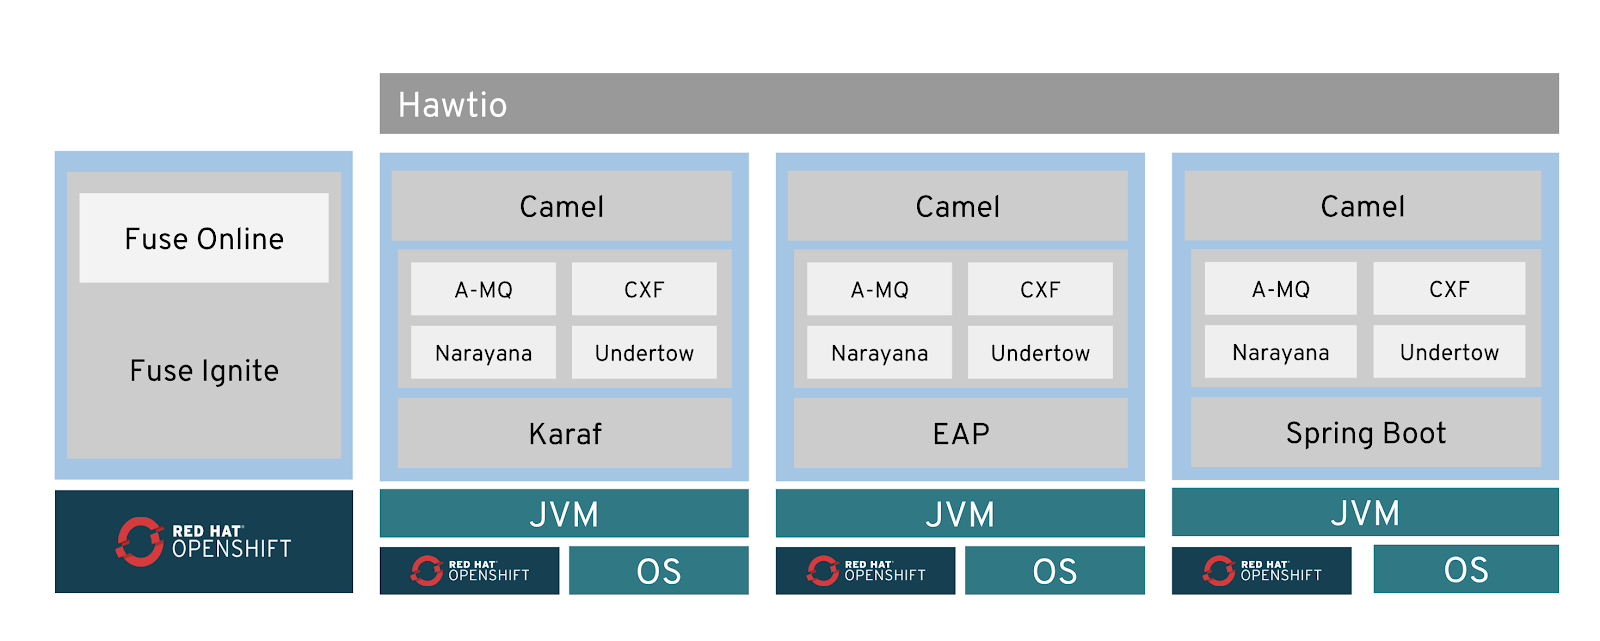 Red Hat Fuse 7 Is Now Available Rhd Blog Box Sign Camel Still The Core Component In Due To Complexity Of Integration Solutions A Pattern Based Solution Crucial For Preventing